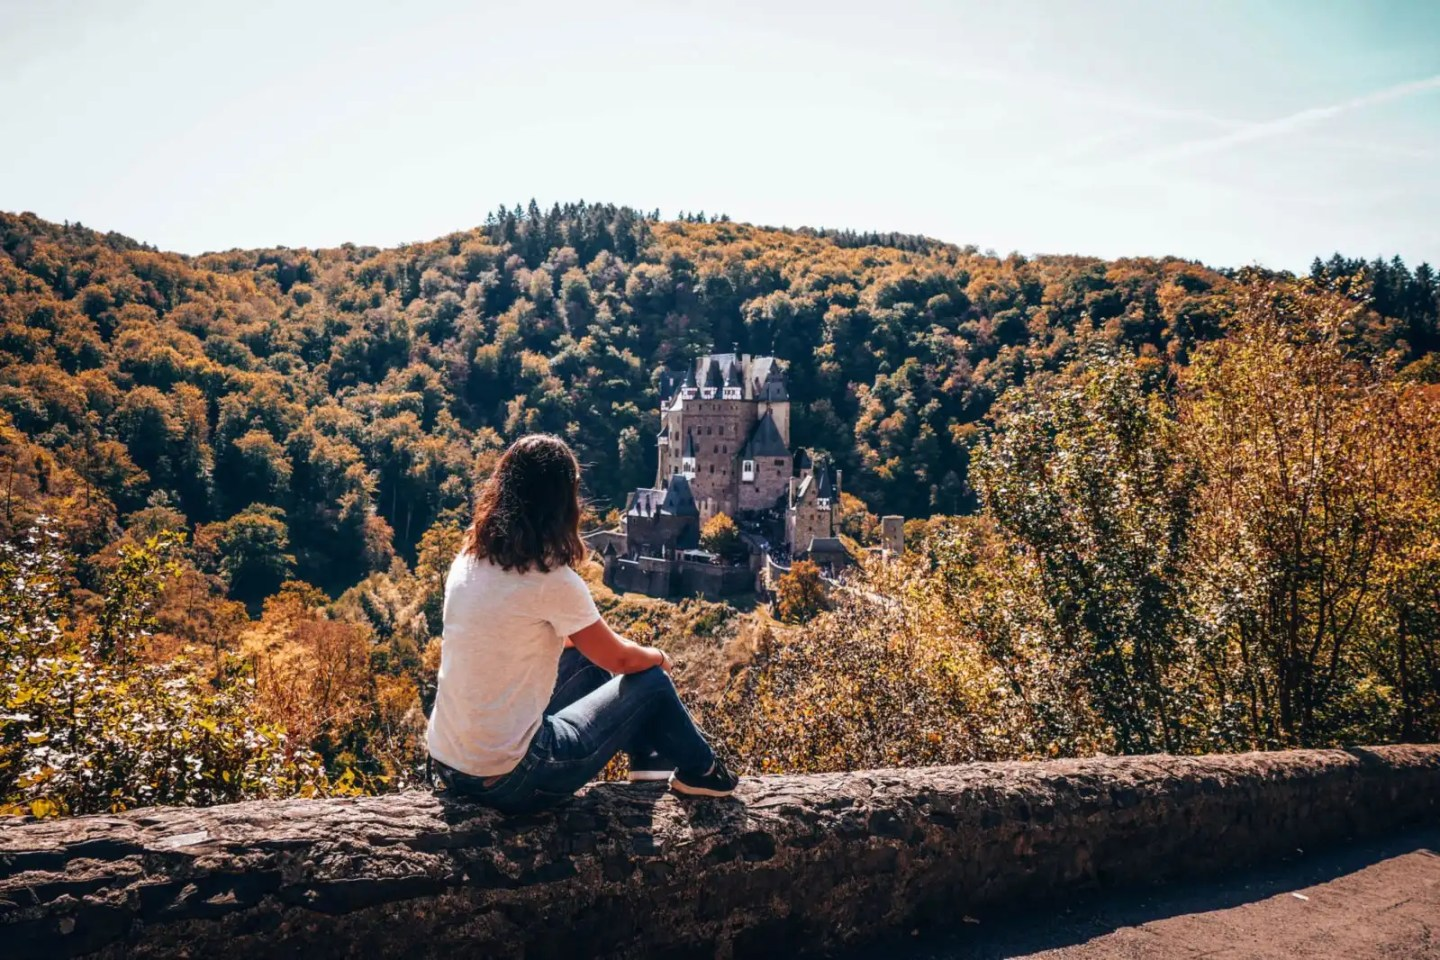 Lee at Burg Eltz in Germany a real hidden gem